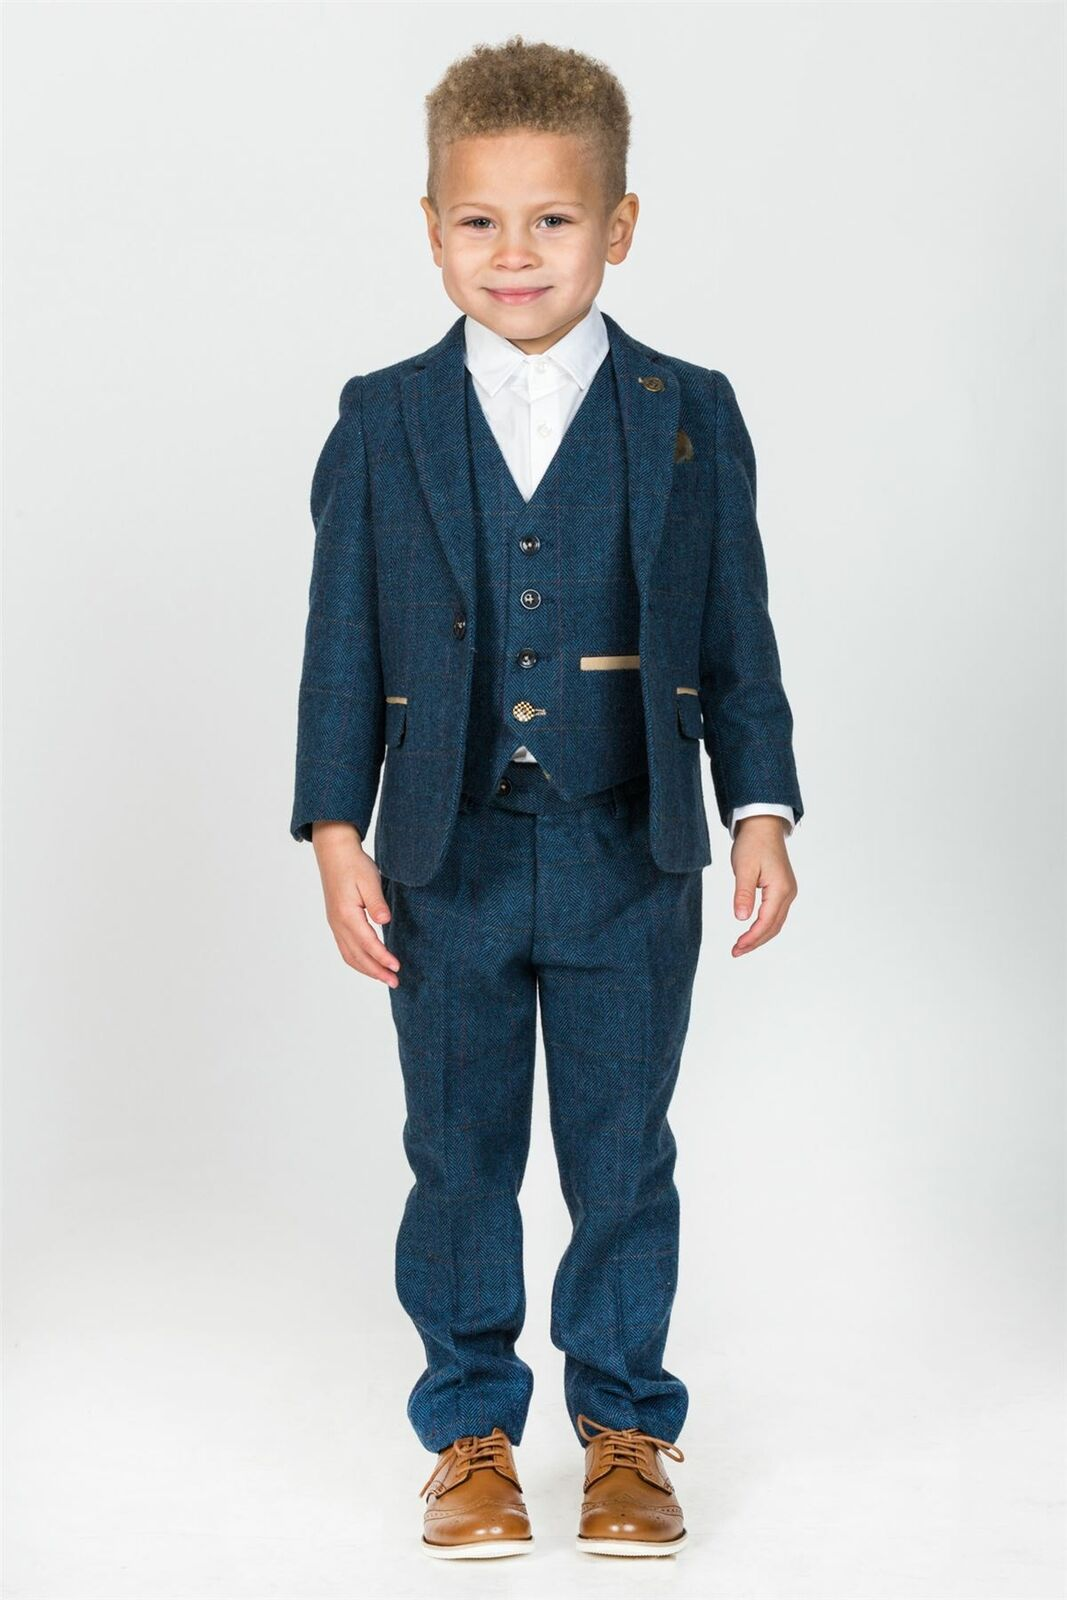 Boys Blue Tweed Wedding Suit with Waistcoat Trousers for Prom Party 1-14 Years